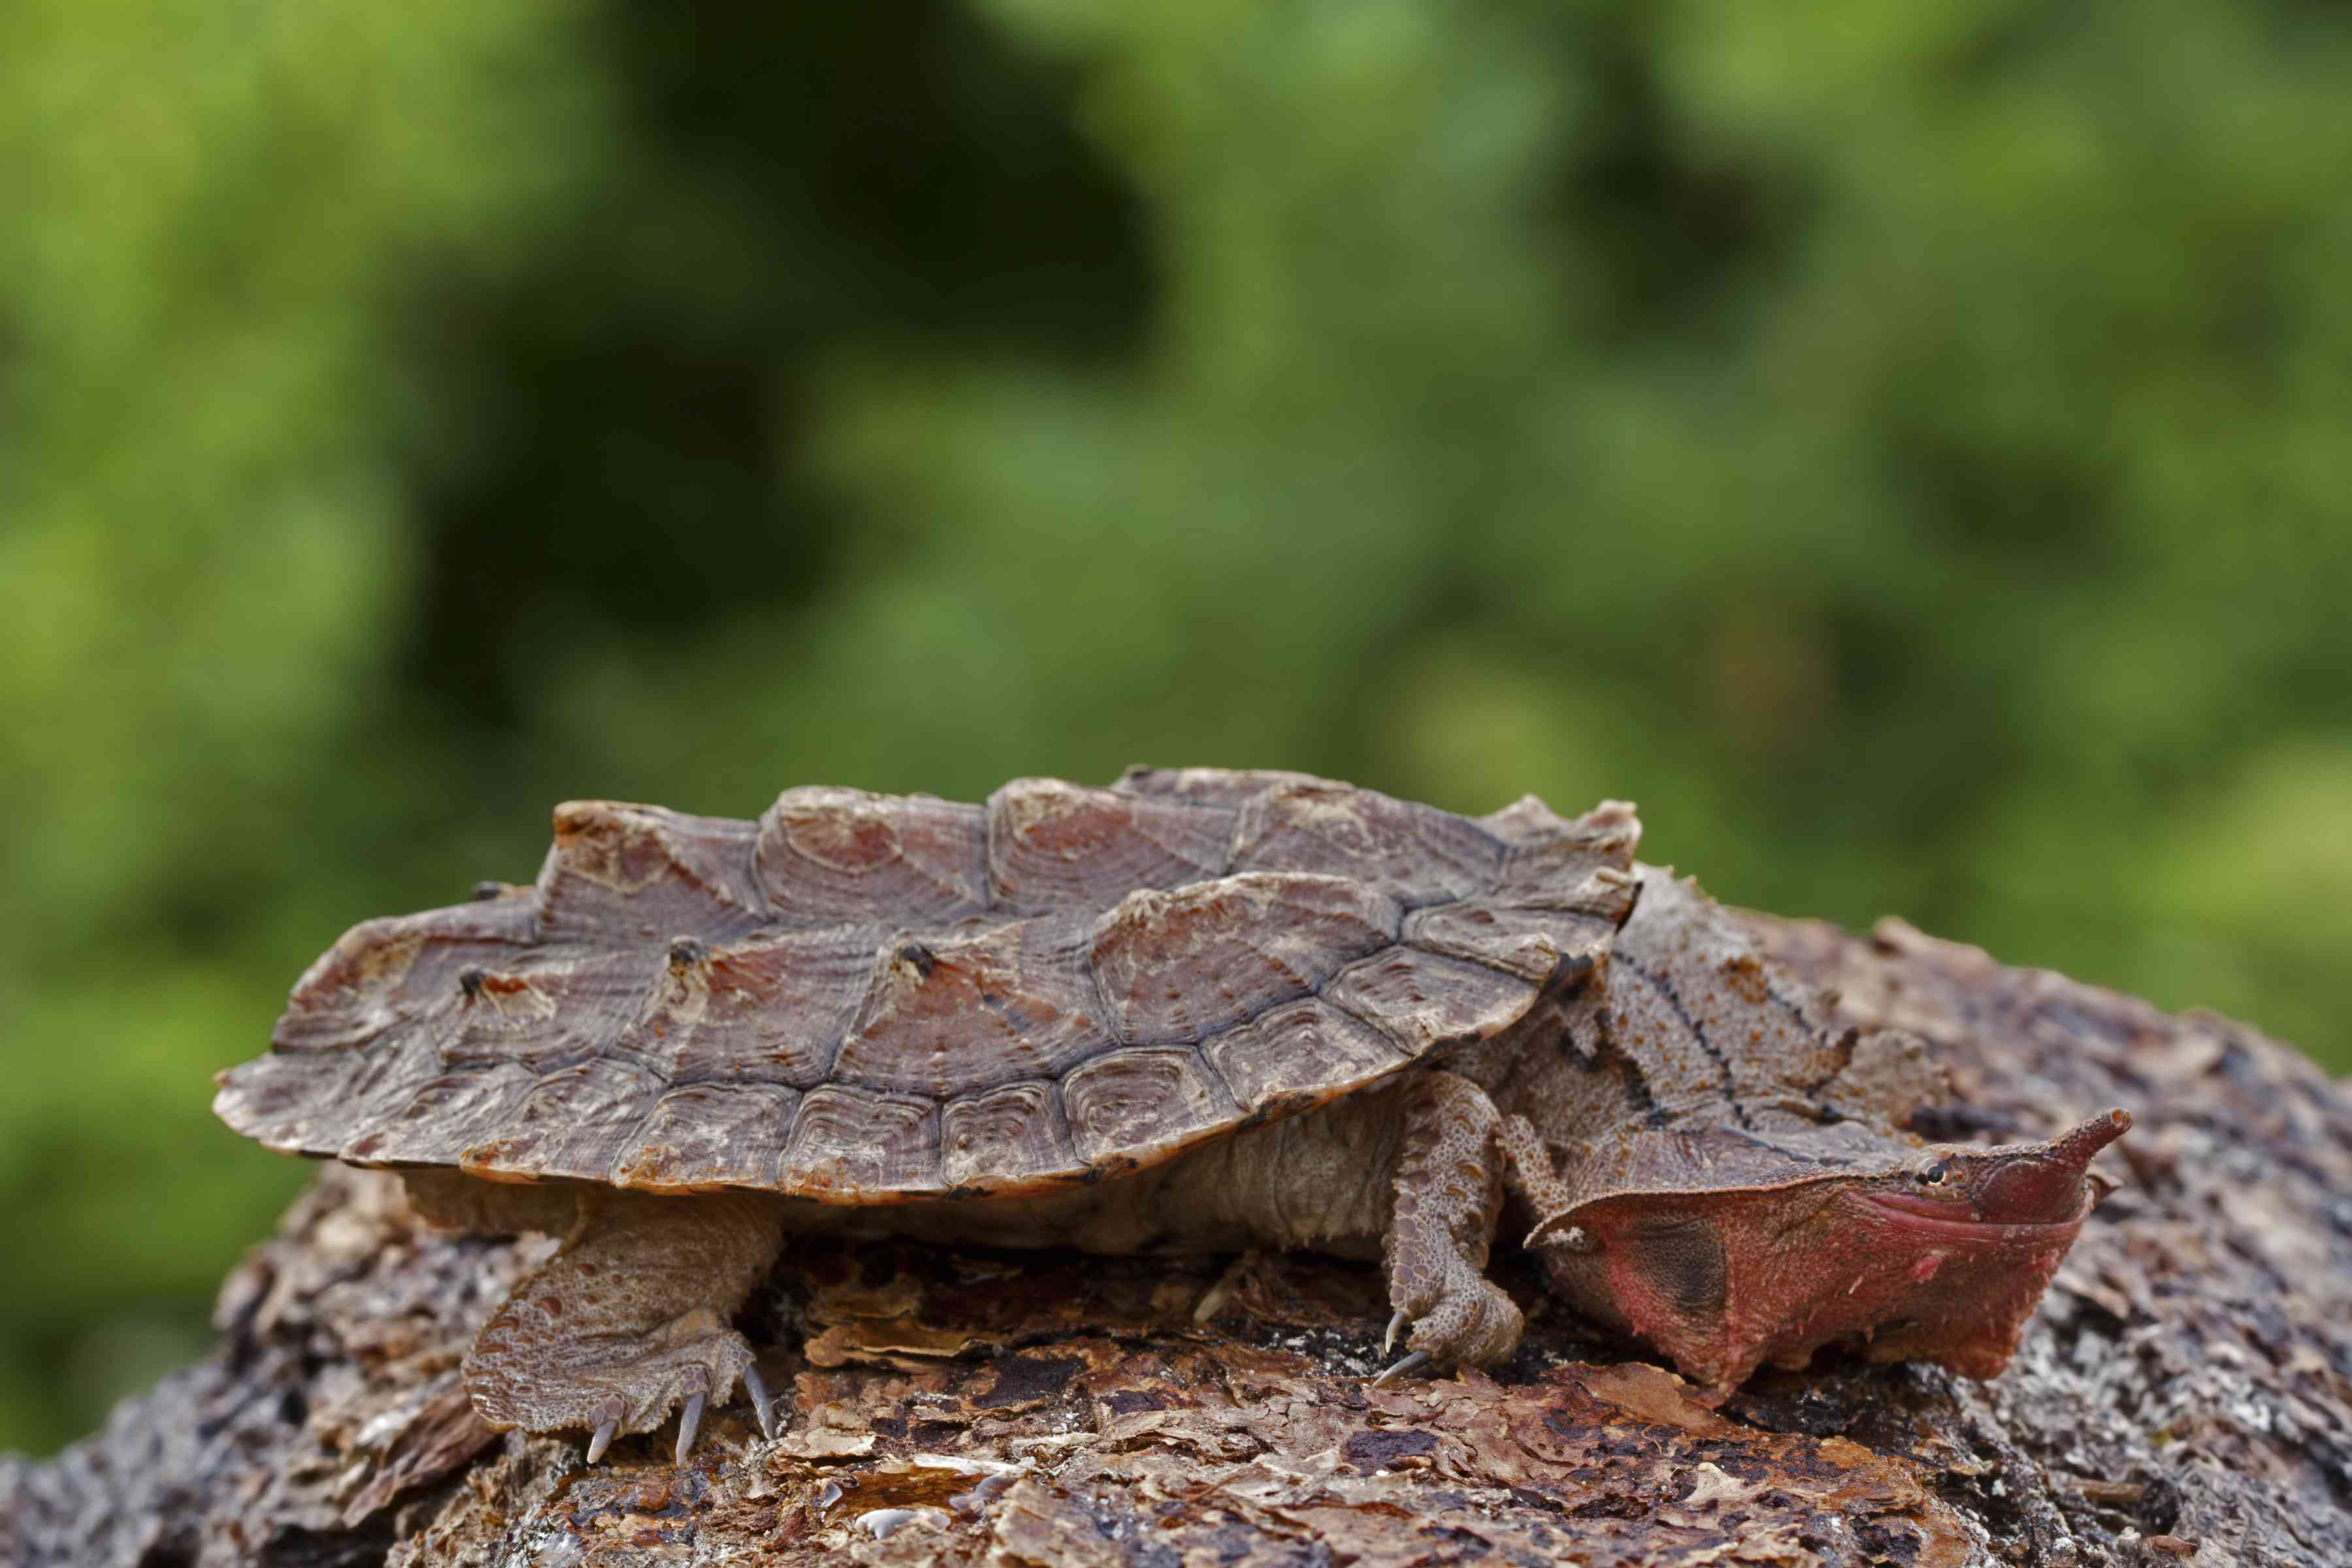 A brown mata mata turtle on a log with green plants in the background